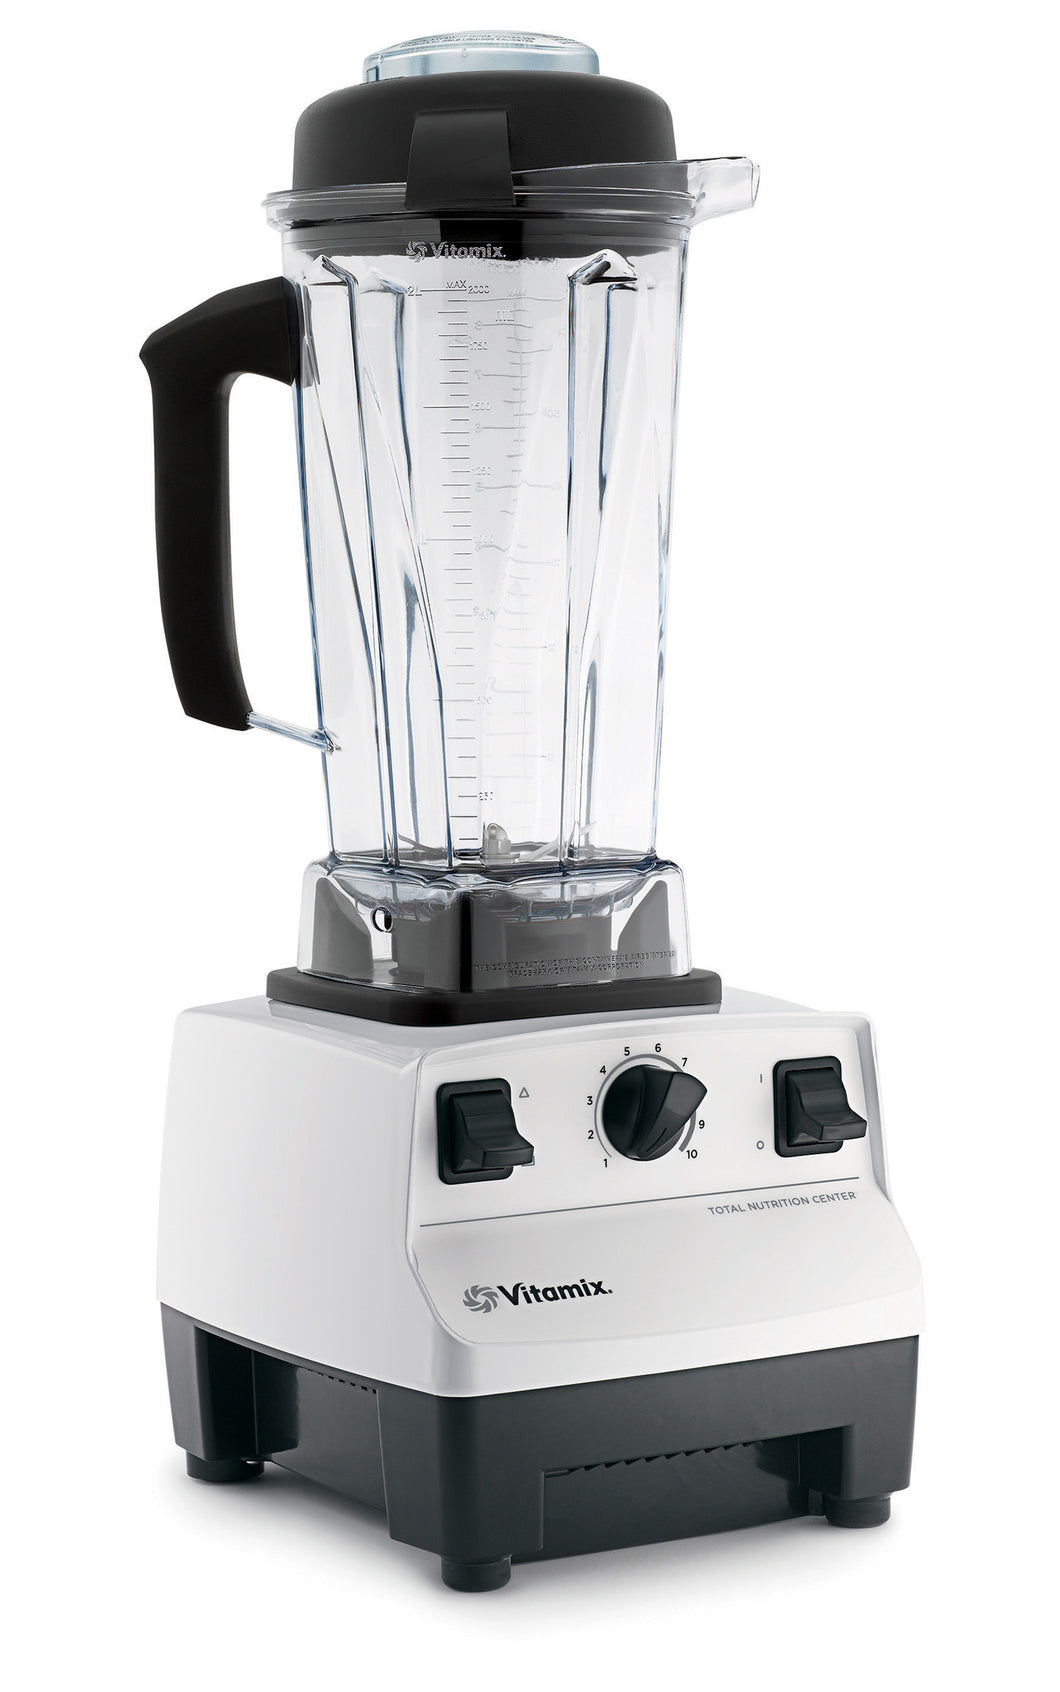 Vitamix Total Nutrition Center 5200 in White